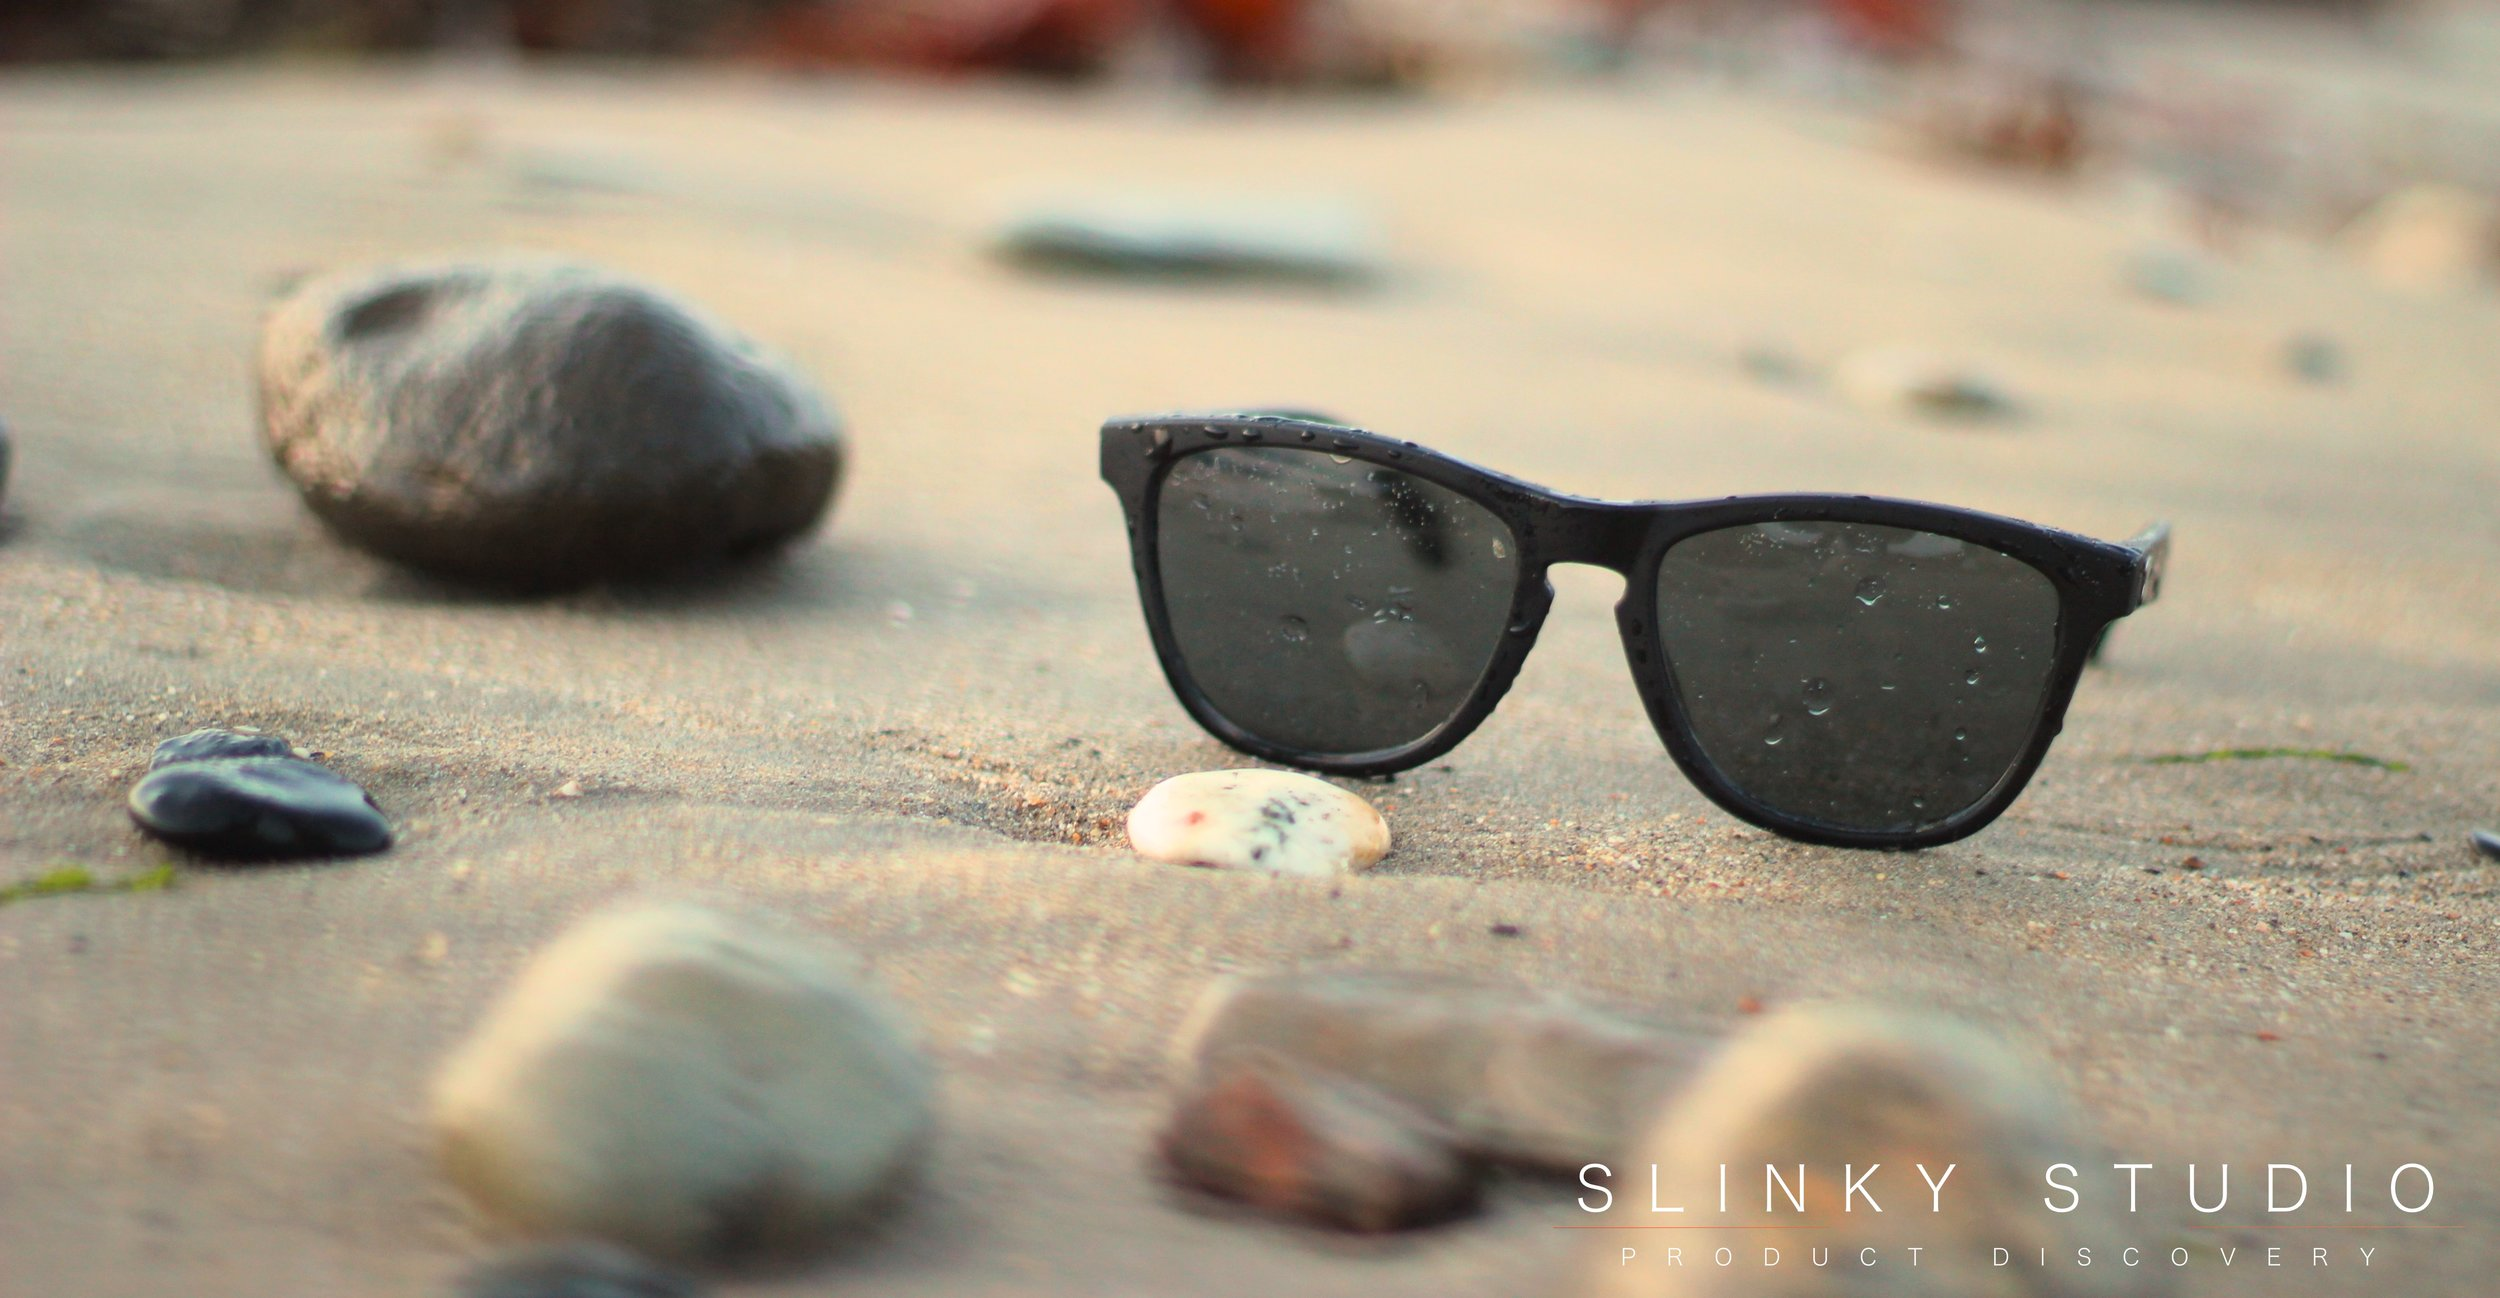 SunGod Classics² Sunglasses Chilling on the Beach.jpg